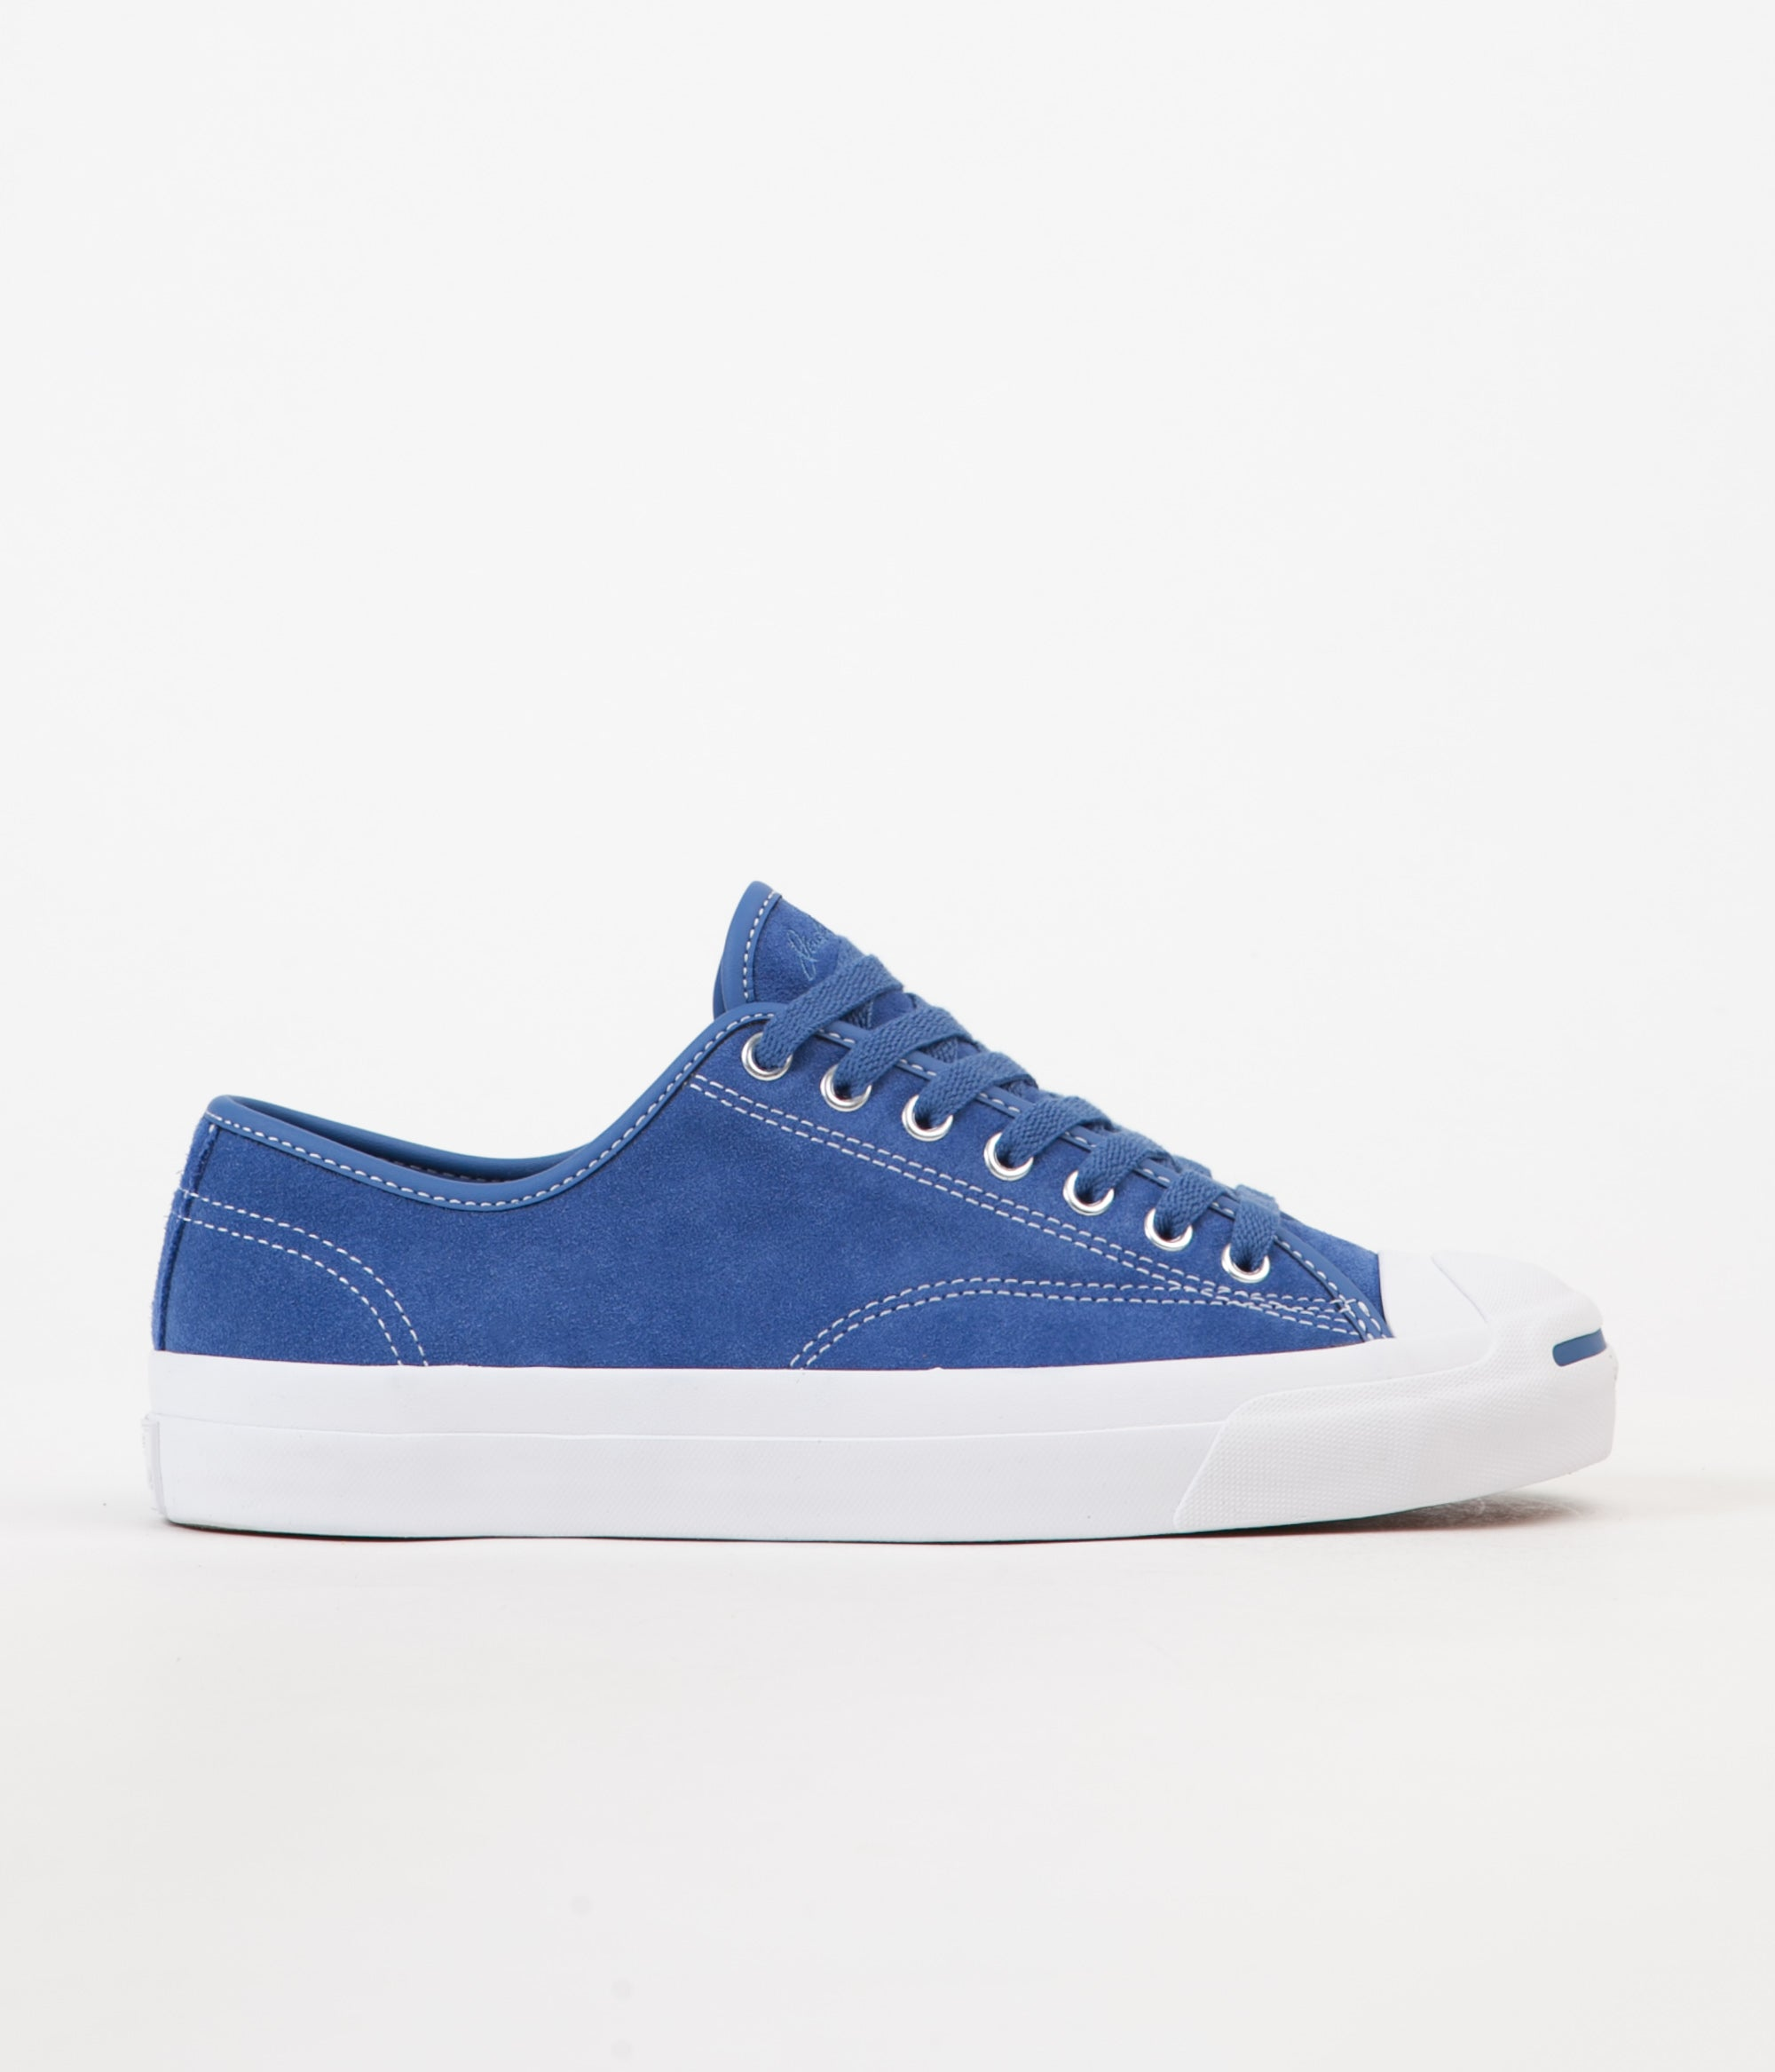 49074c49d42e4a Converse Jack Purcell Pro Ox Shoes - Nightfall Blue   Nightfall Blue   White